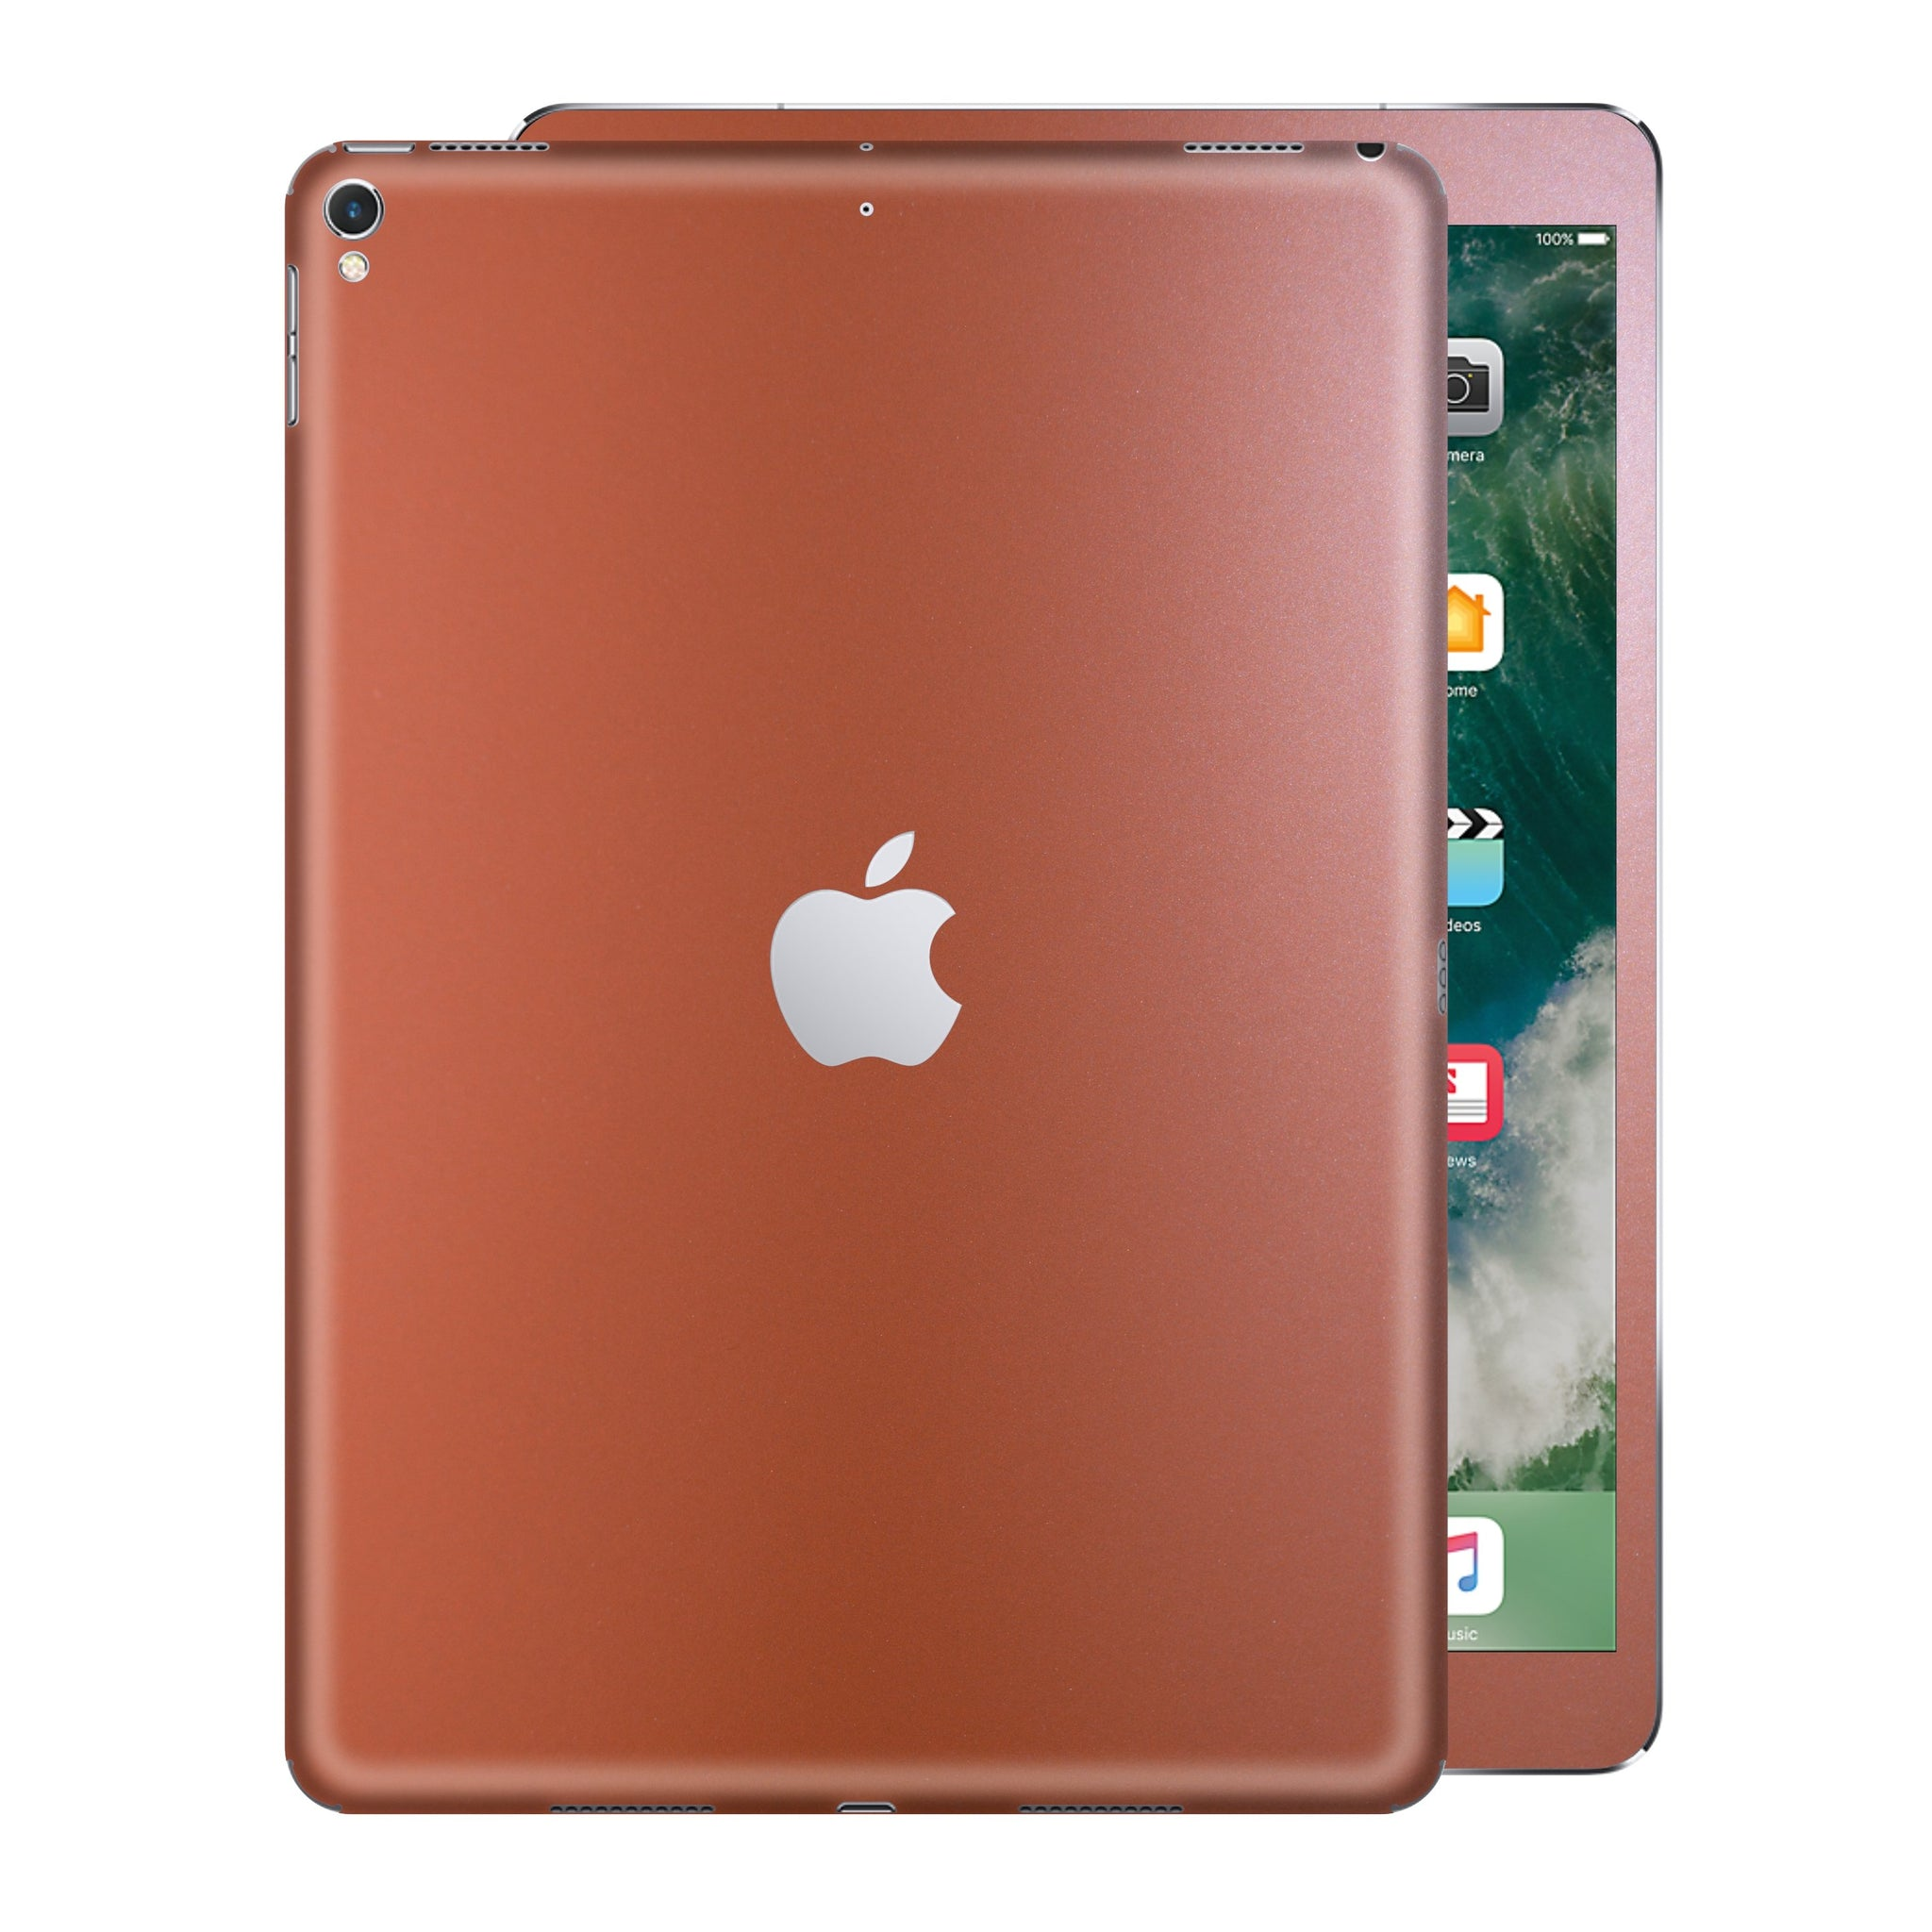 iPad PRO 10.5 inch 2017 Matt Matte Rose Gold Metallic Skin Wrap Sticker Decal Cover Protector by EasySkinz